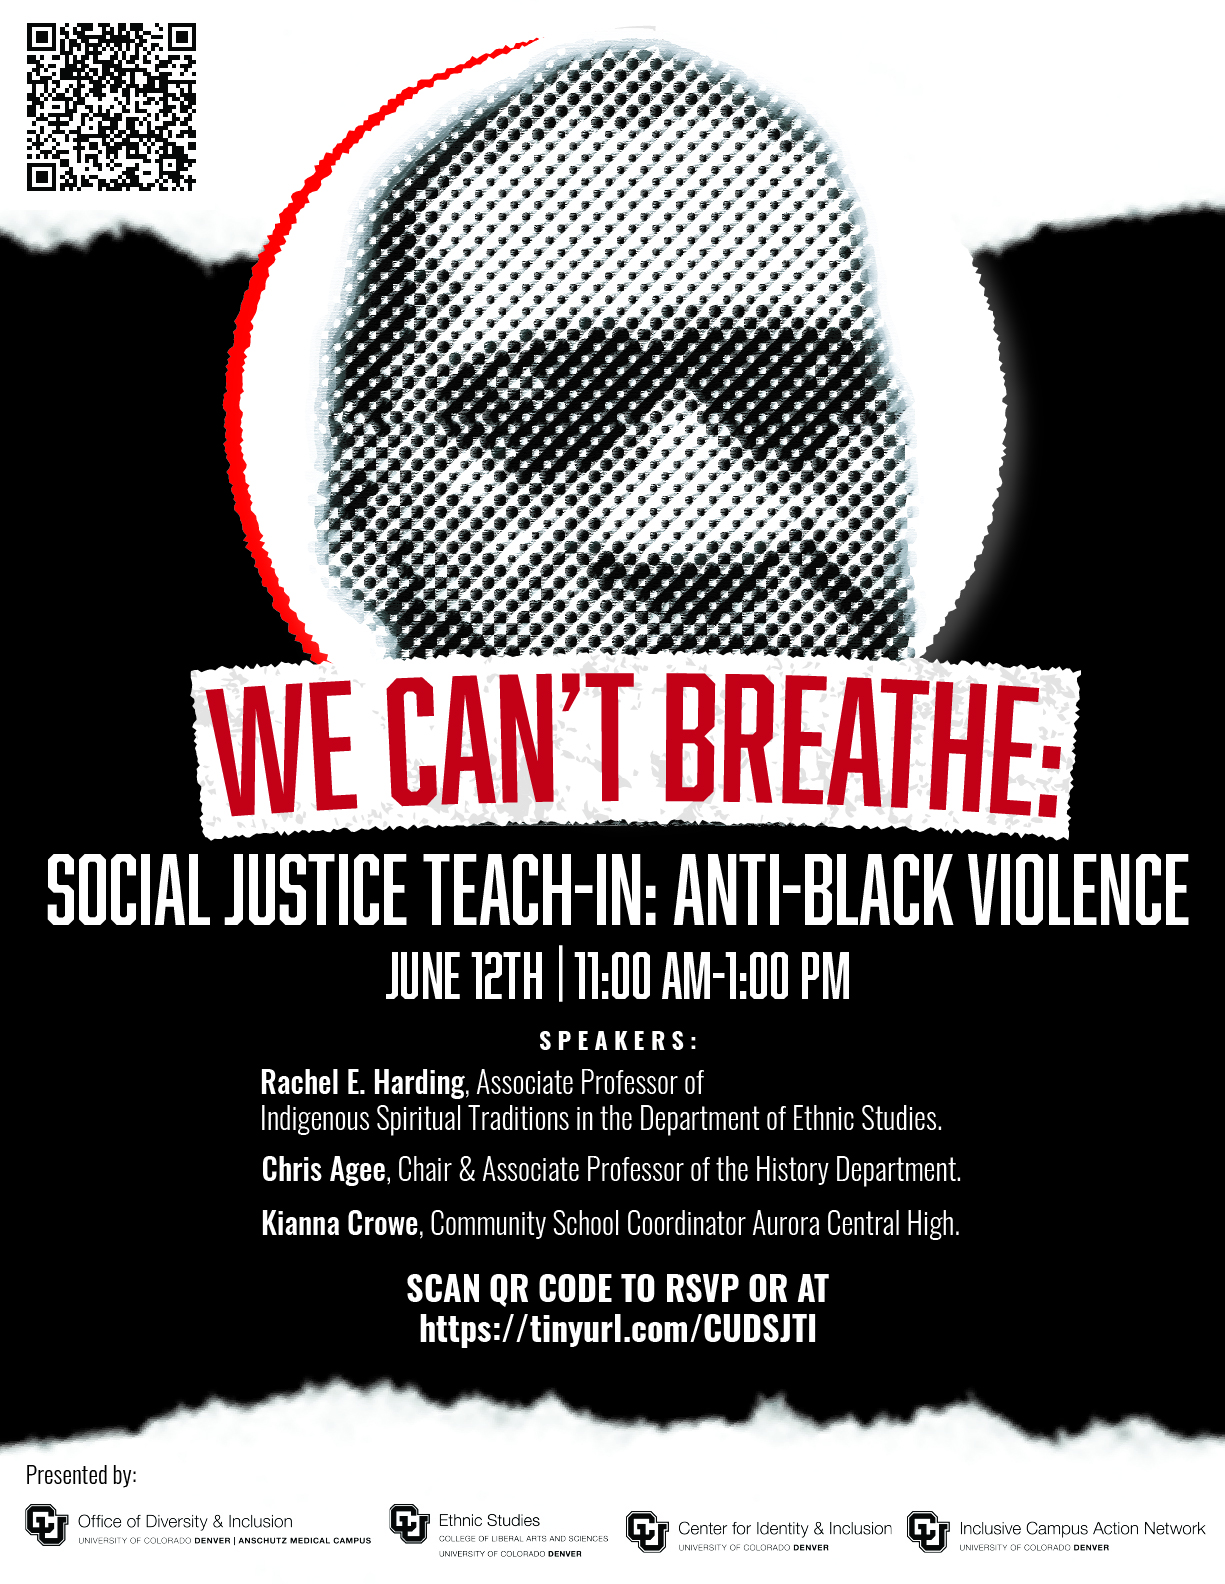 We Can't Breathe: Social Justice Teach-In: Anti-Black Violence